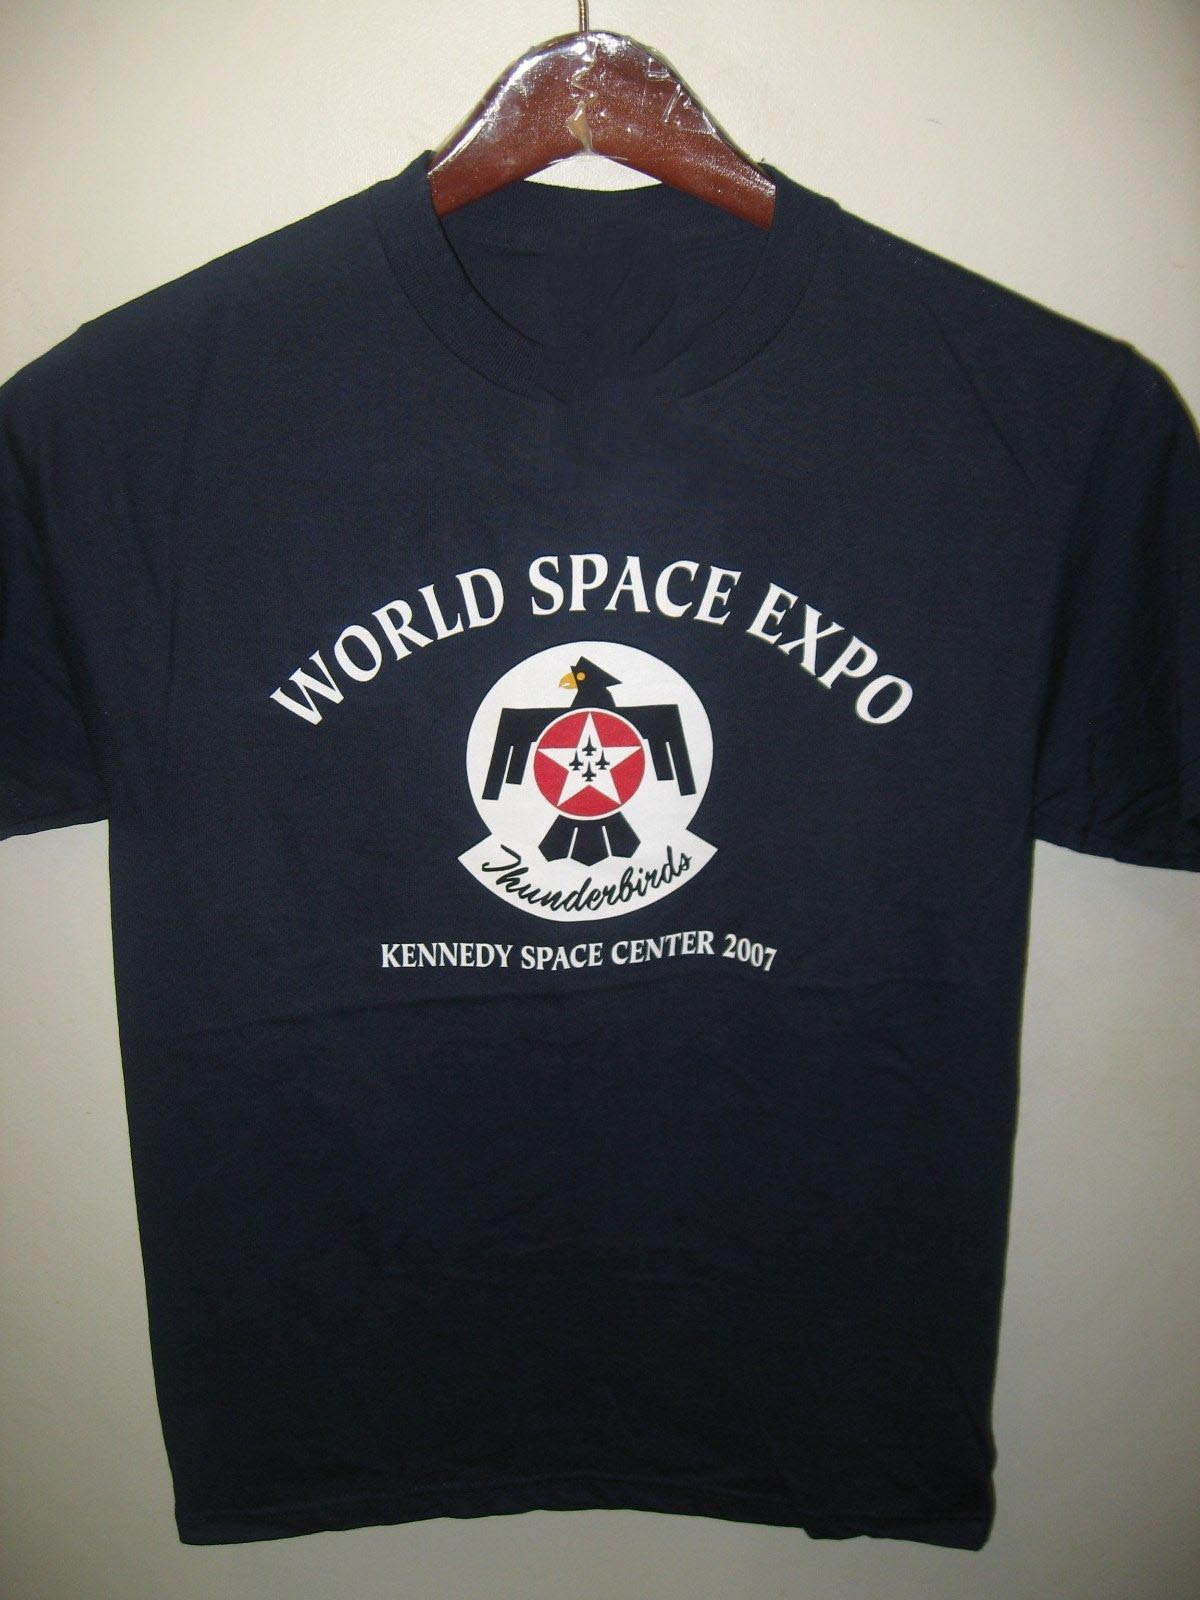 World Space Expo <font><b>USAF</b></font> Thunderbirds Jets Kennedy Space Center T <font><b>Shirt</b></font> tshirt new hip hop fashion top free shipping 2018 officia image